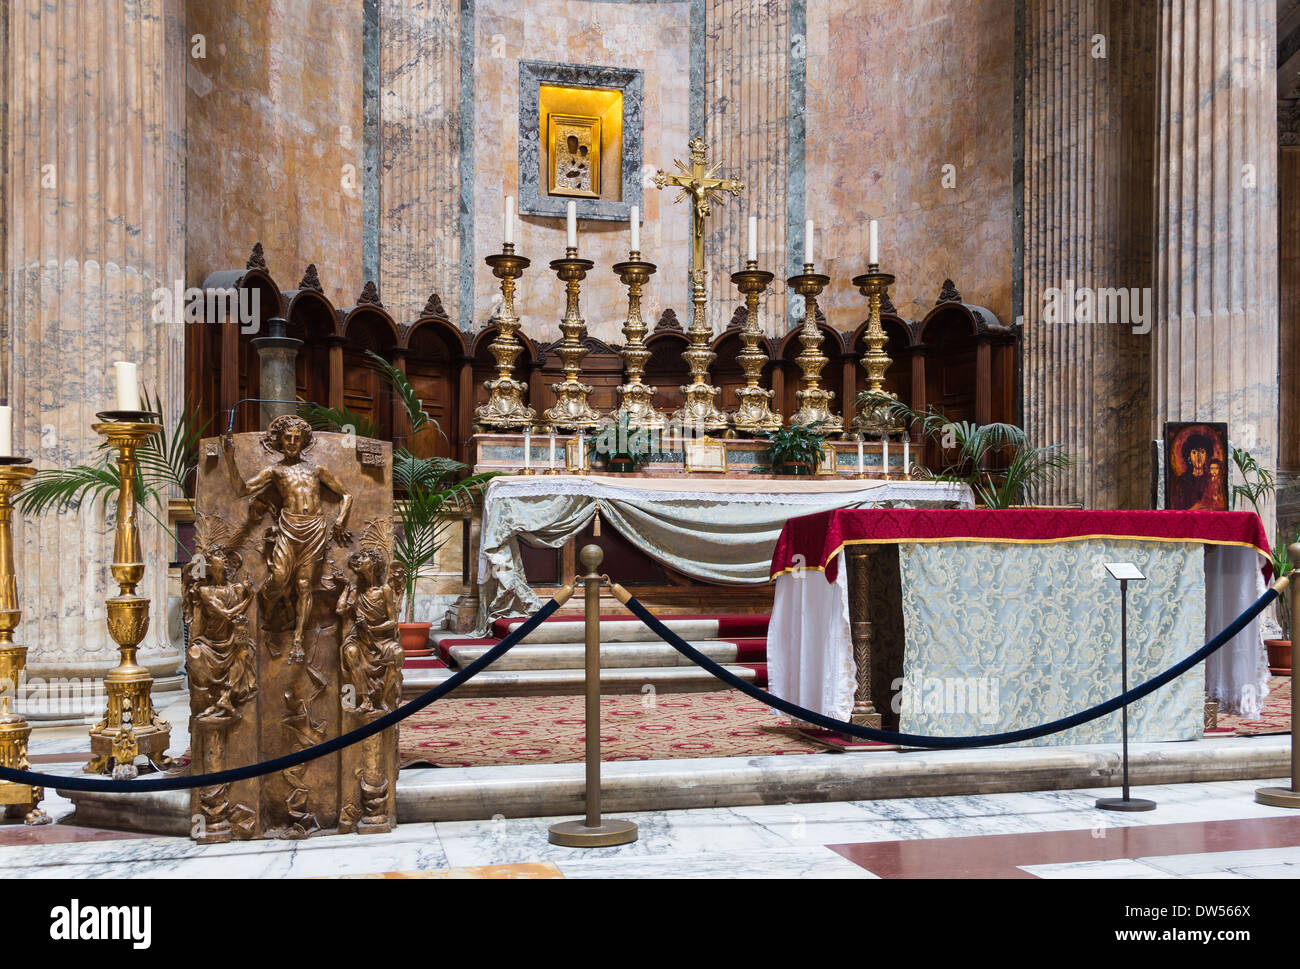 The main altar of the church Sancta Maria ad Martyres (the Pantheon), in Rome, Italy. - Stock Image